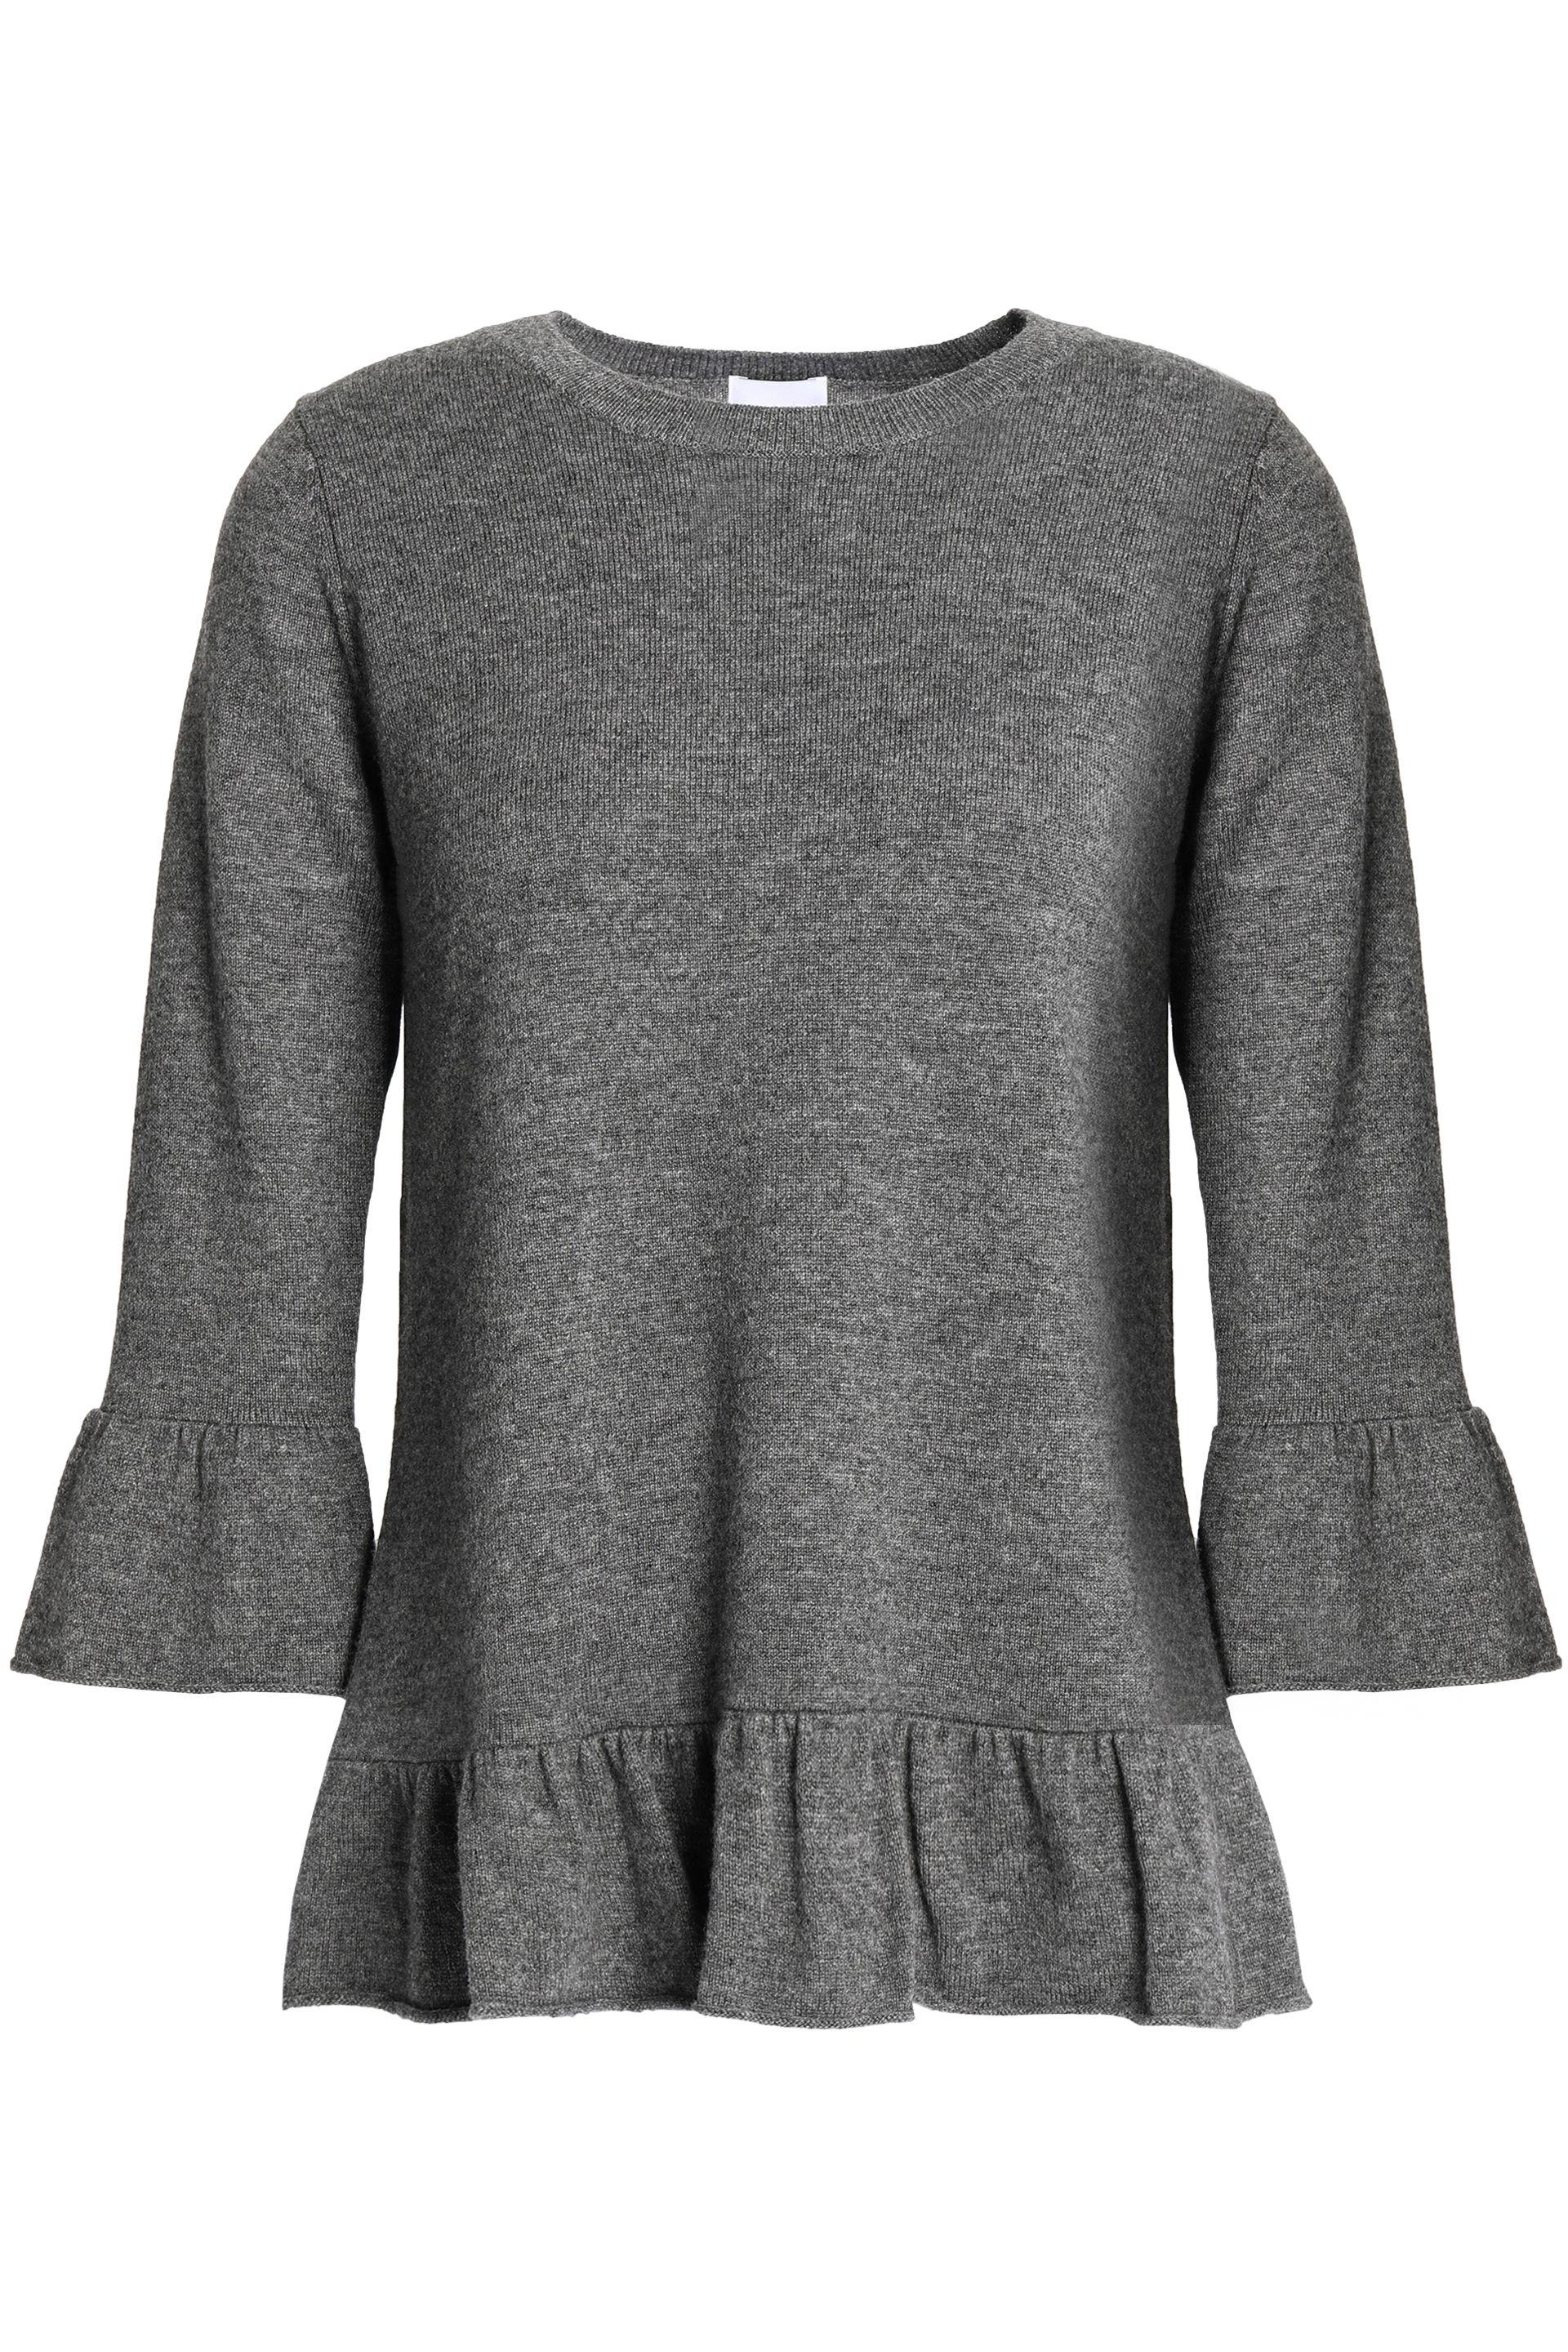 Madeleine Thompson Woman Mélange Wool And Cashmere-blend Peplum Top Gray Size M Madeleine Thompson Deals For Sale Footlocker Finishline For Sale Sale Great Deals Discount Shop Offer 039kdQfDw